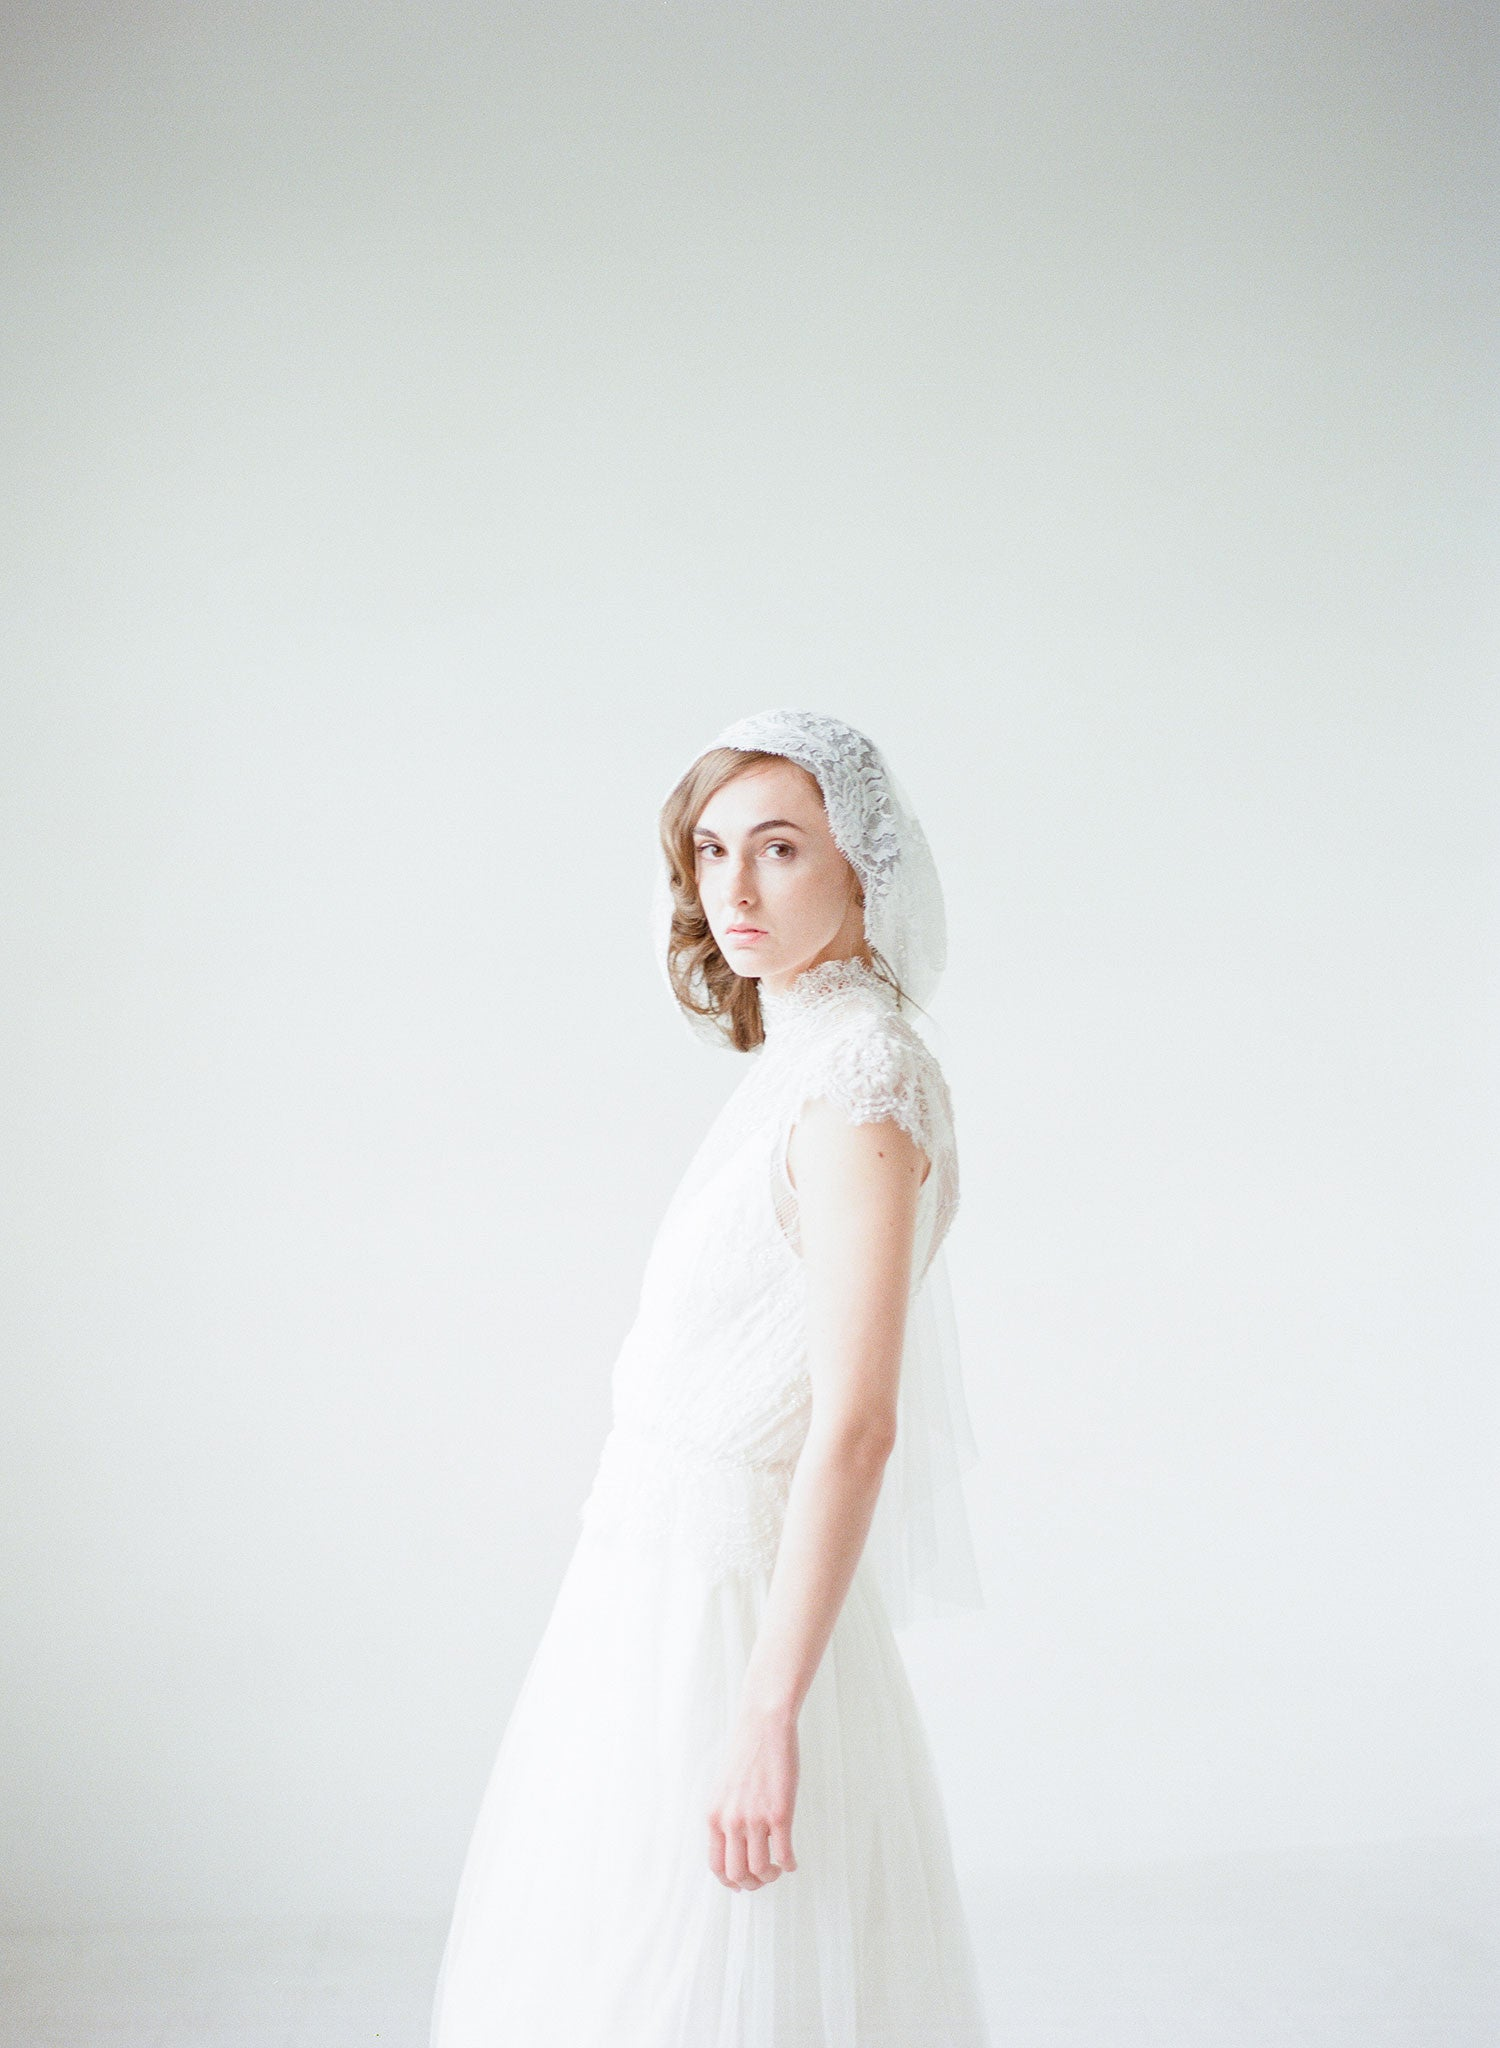 Wedding veil - Mantilla lace trimmed veil with headband - Style #709 ...